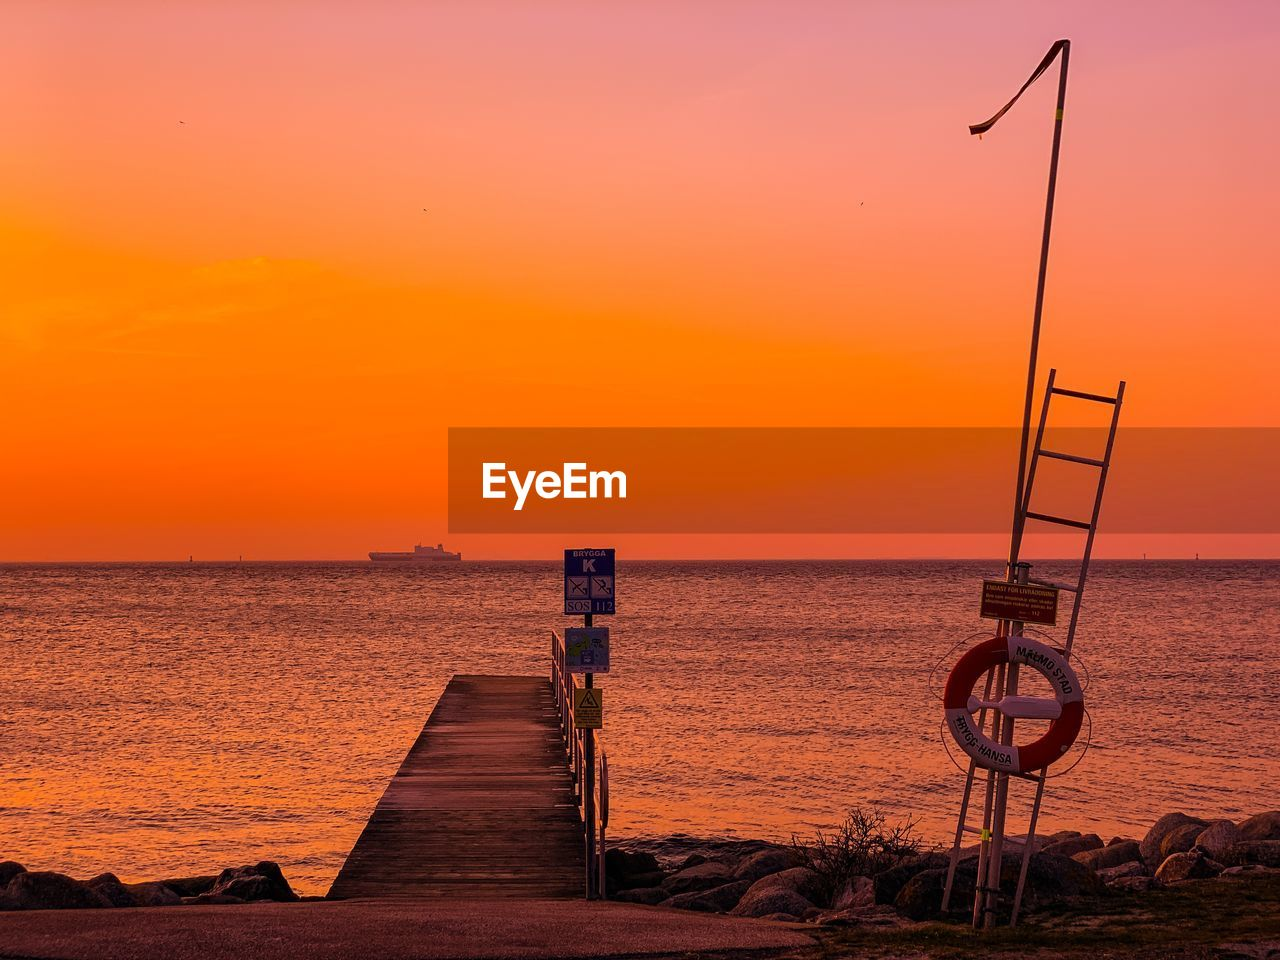 sunset, sky, water, orange color, sea, beauty in nature, scenics - nature, tranquility, horizon over water, horizon, tranquil scene, nature, idyllic, street light, no people, beach, outdoors, land, lighting equipment, sailboat